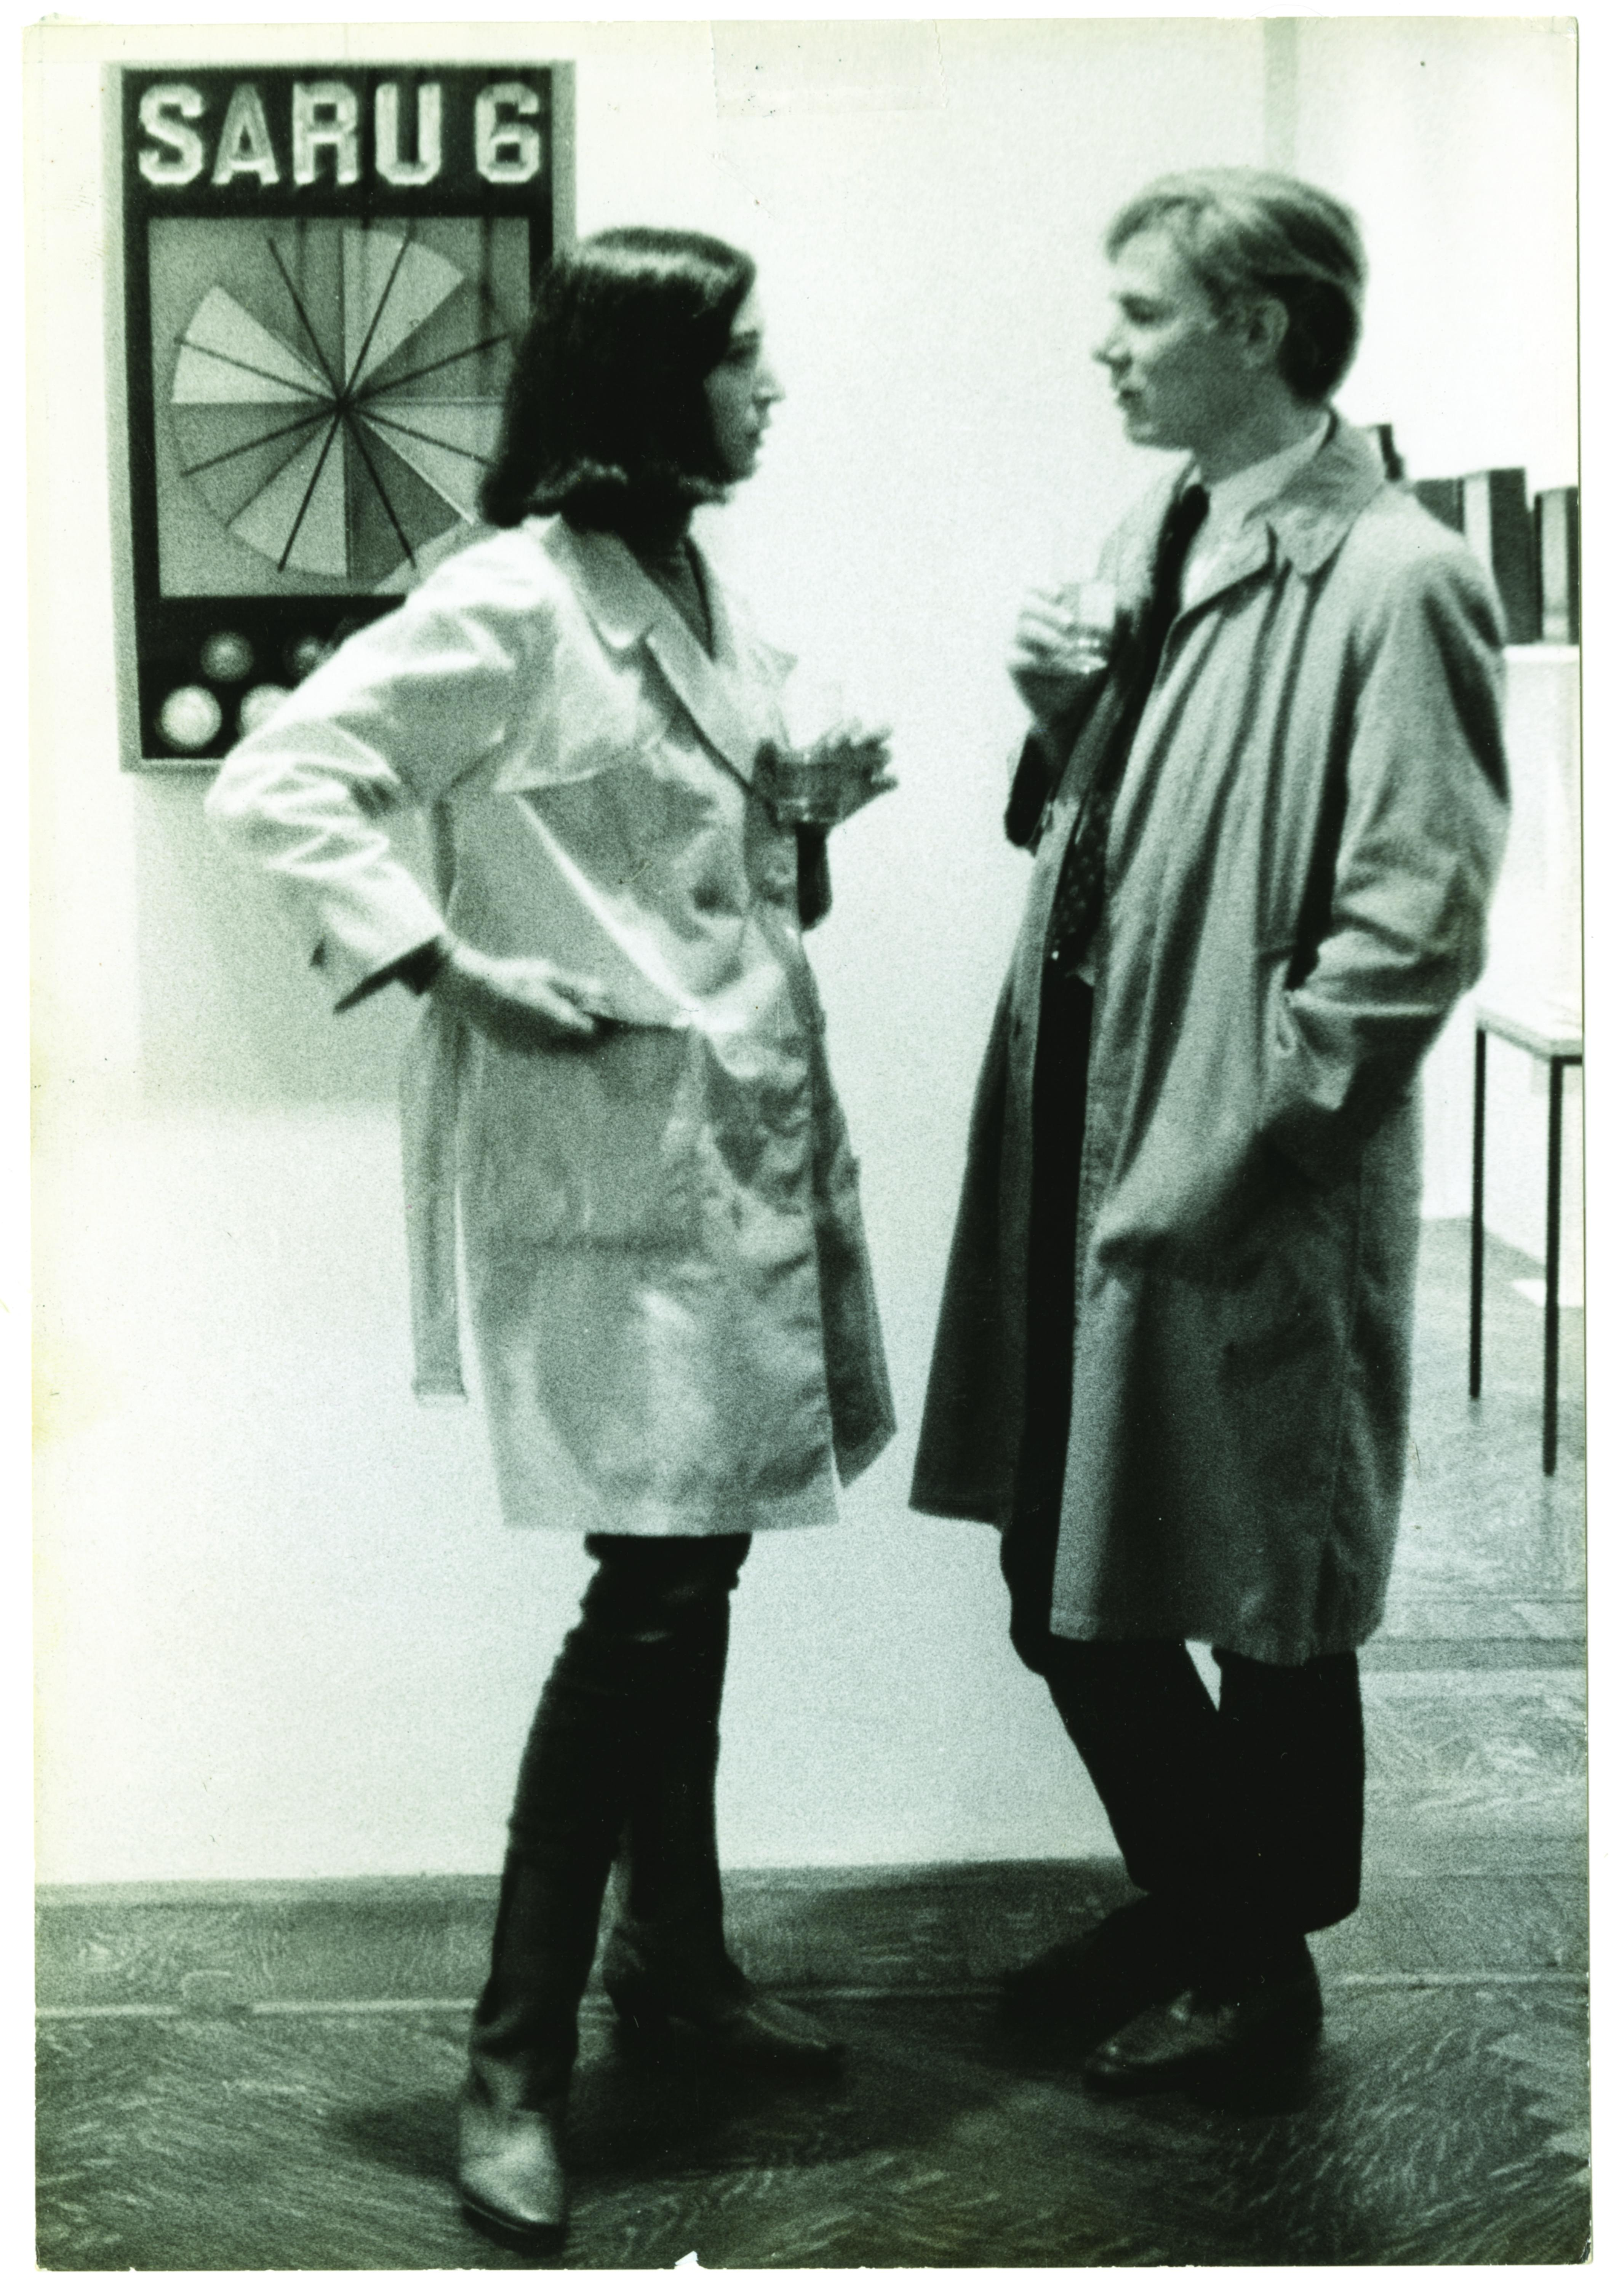 A dark-haired woman and blonde-haired man wearing trench coats and holding drinks stand facing each other in front of an artwork.